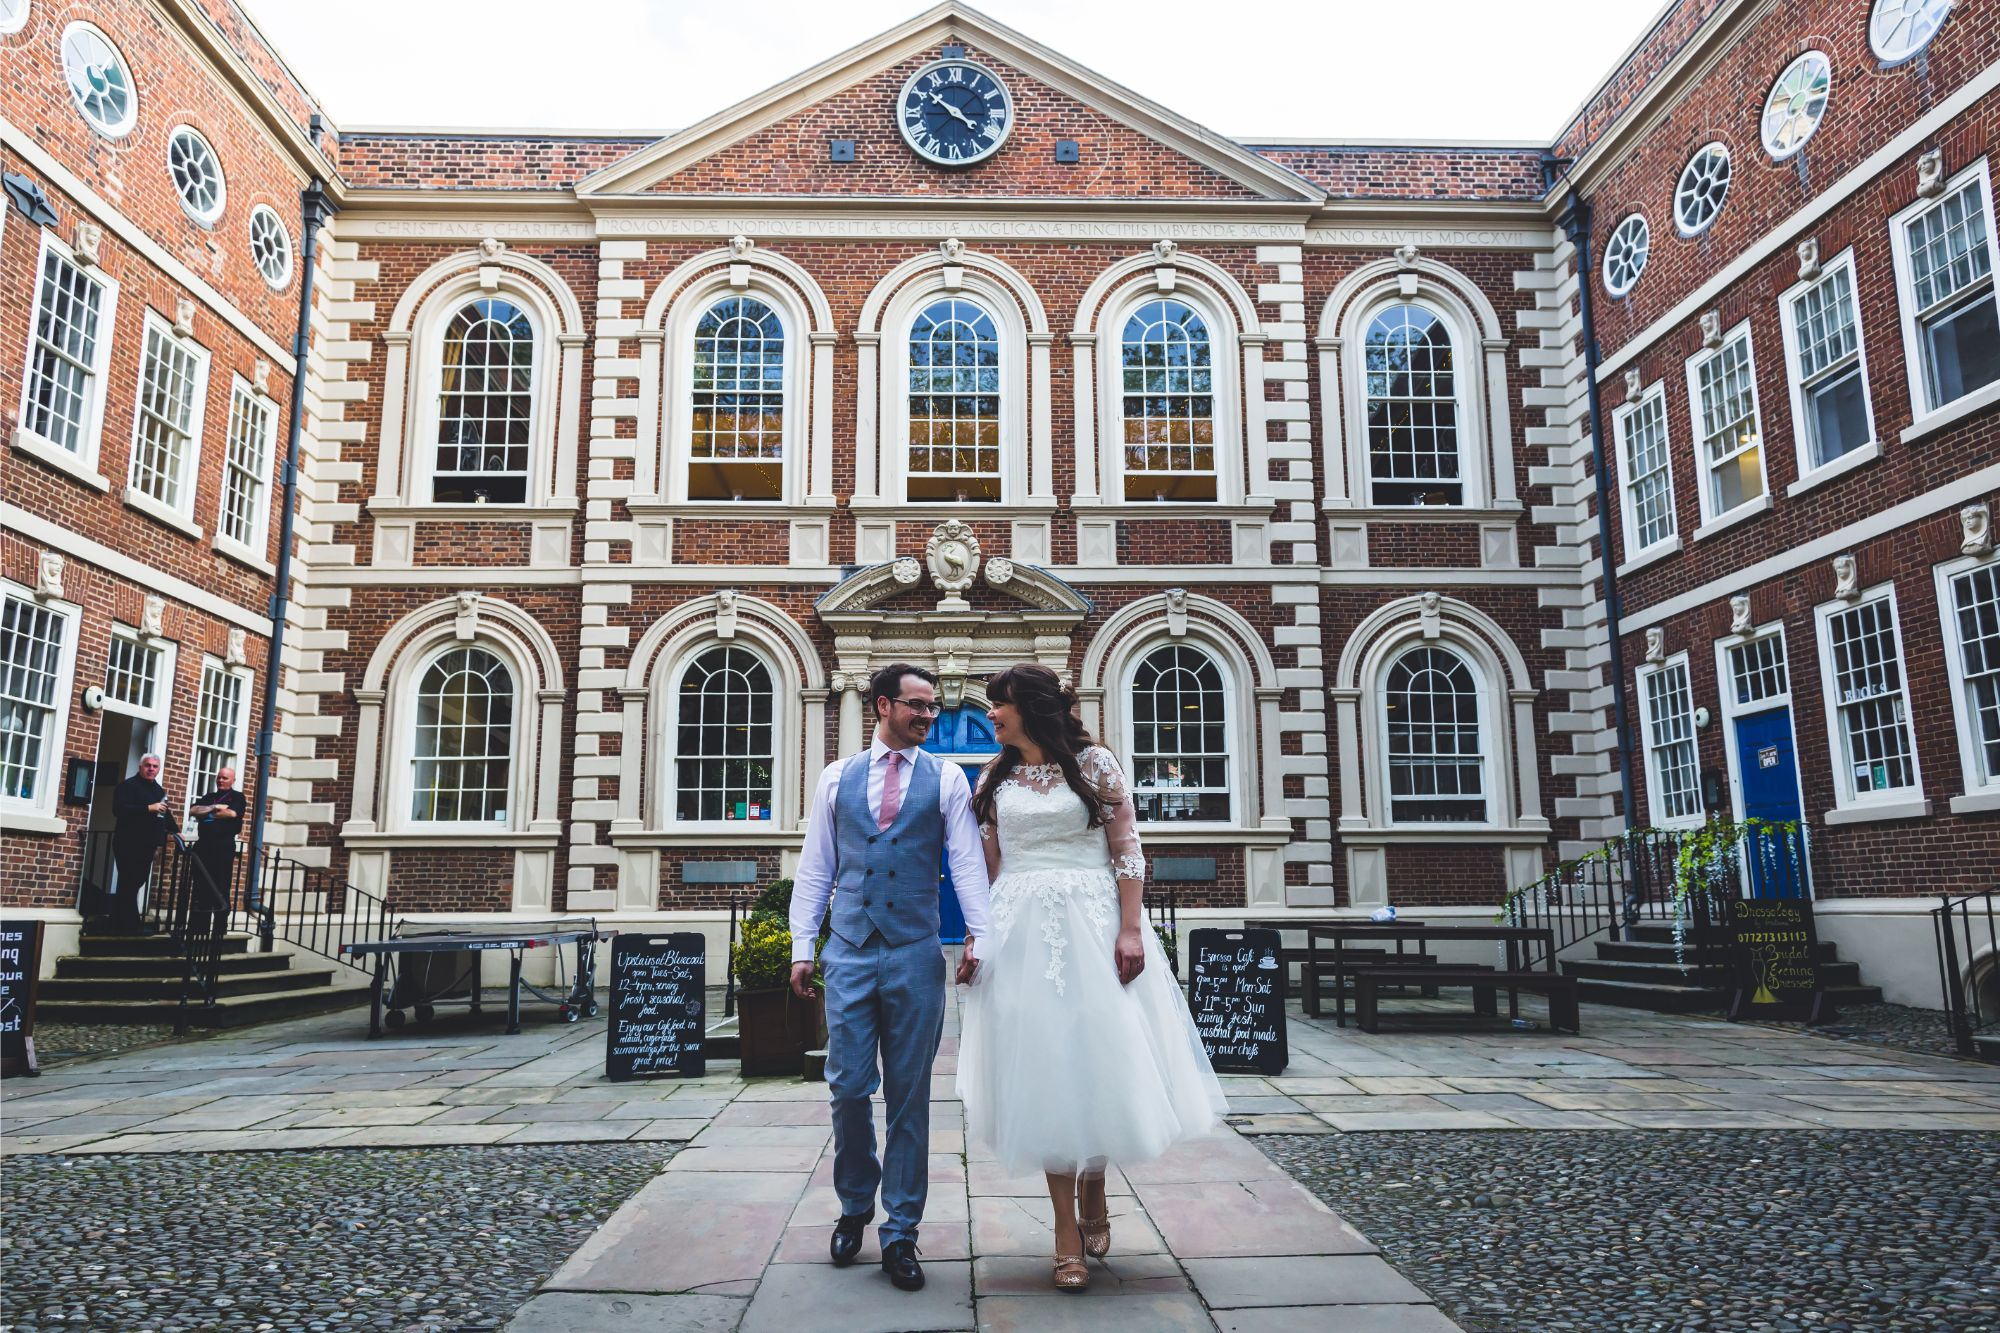 Bride & Groom walk through the courtyard of The Bluecoat Liverpool